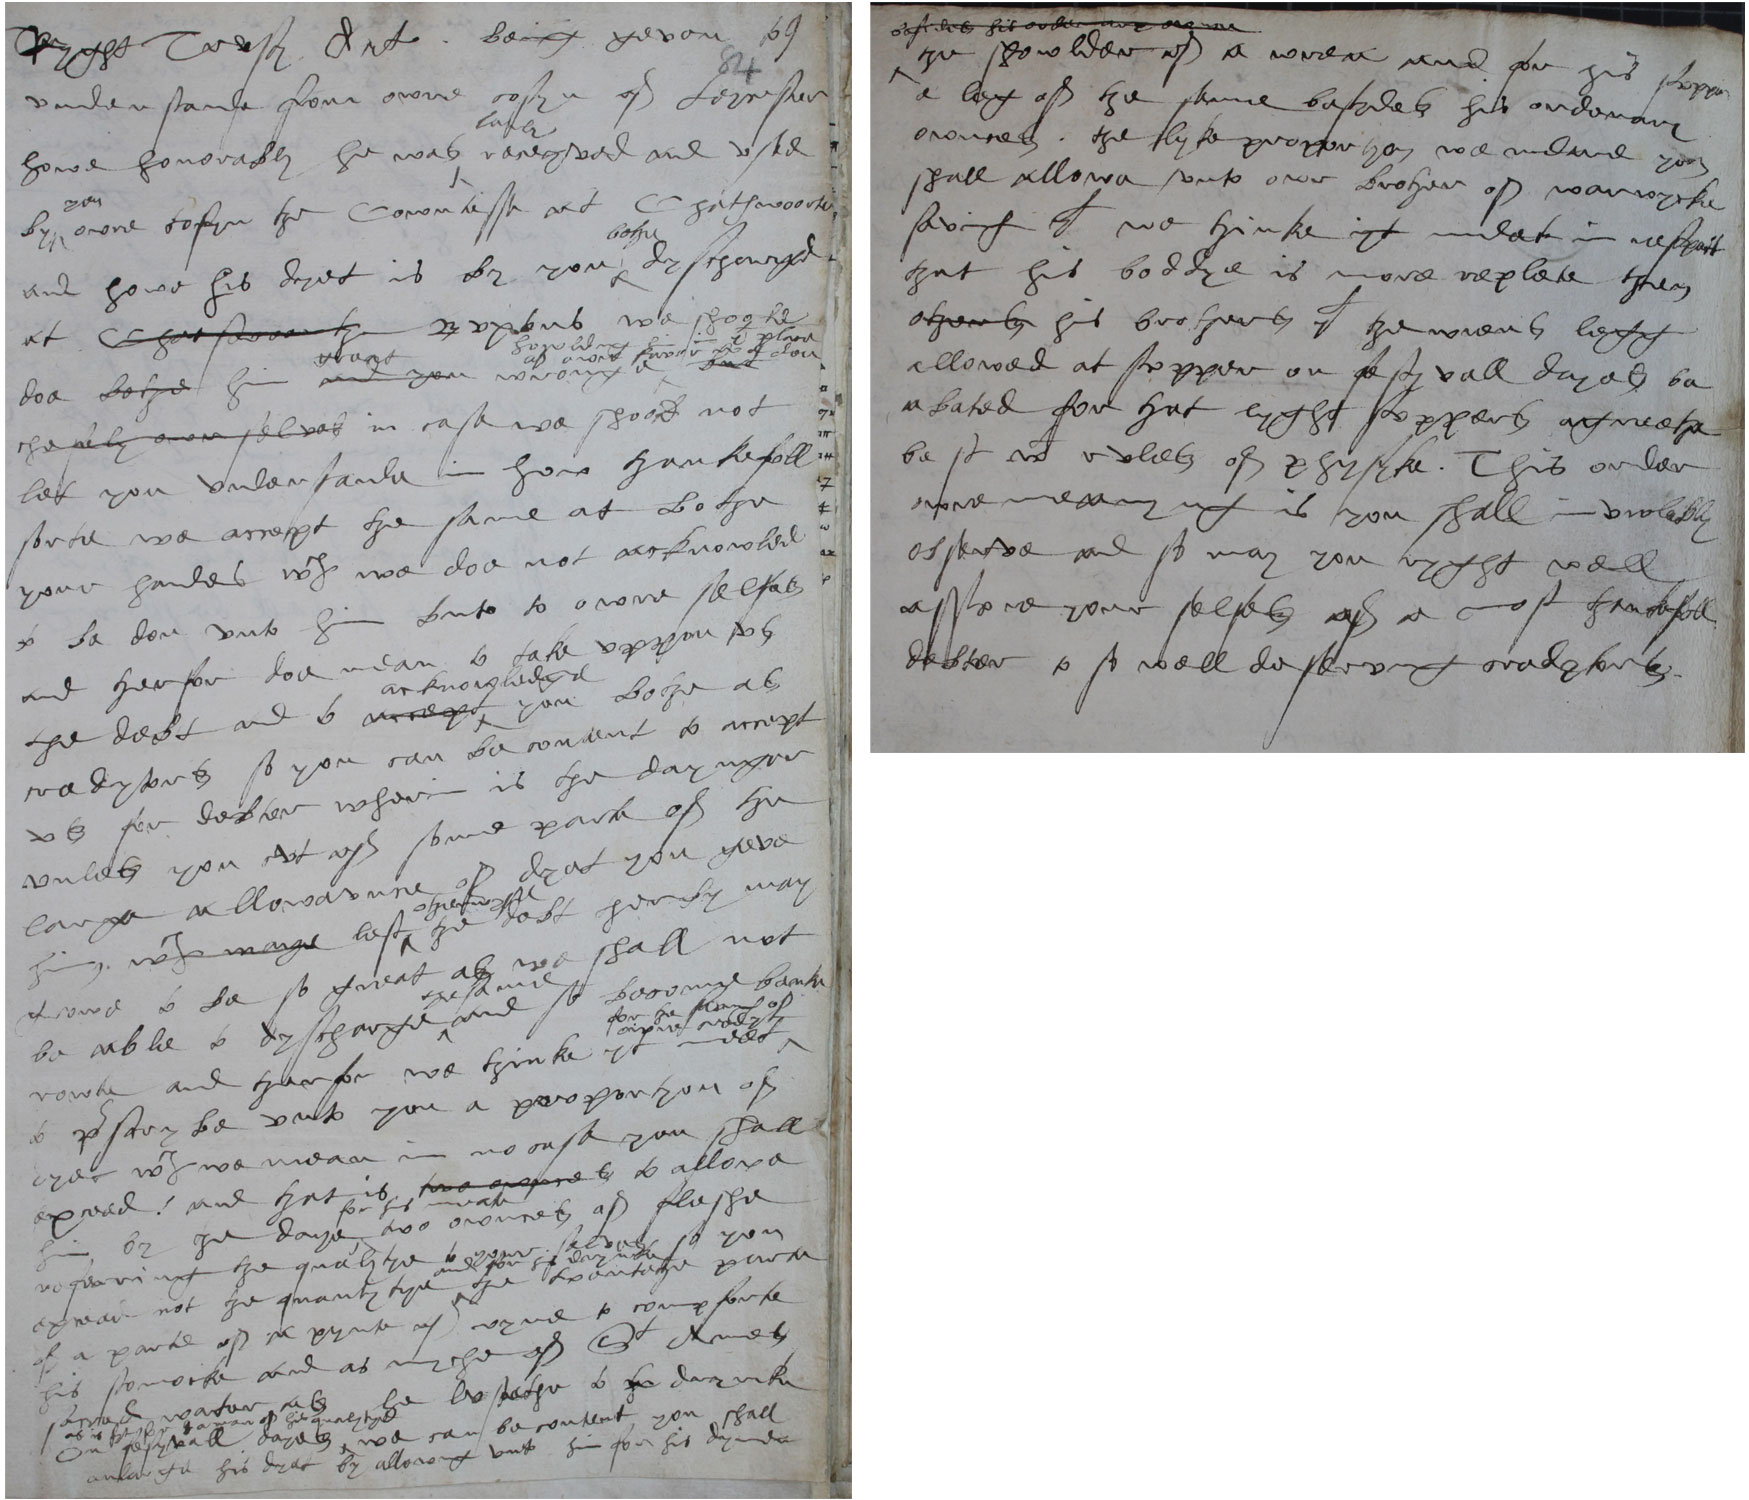 Elizabeth I to George and Elizabeth 'Bess' Talbot, Earl and Countess of Shrewsbury, 4 June 1577 (SP 53/10 f.84)